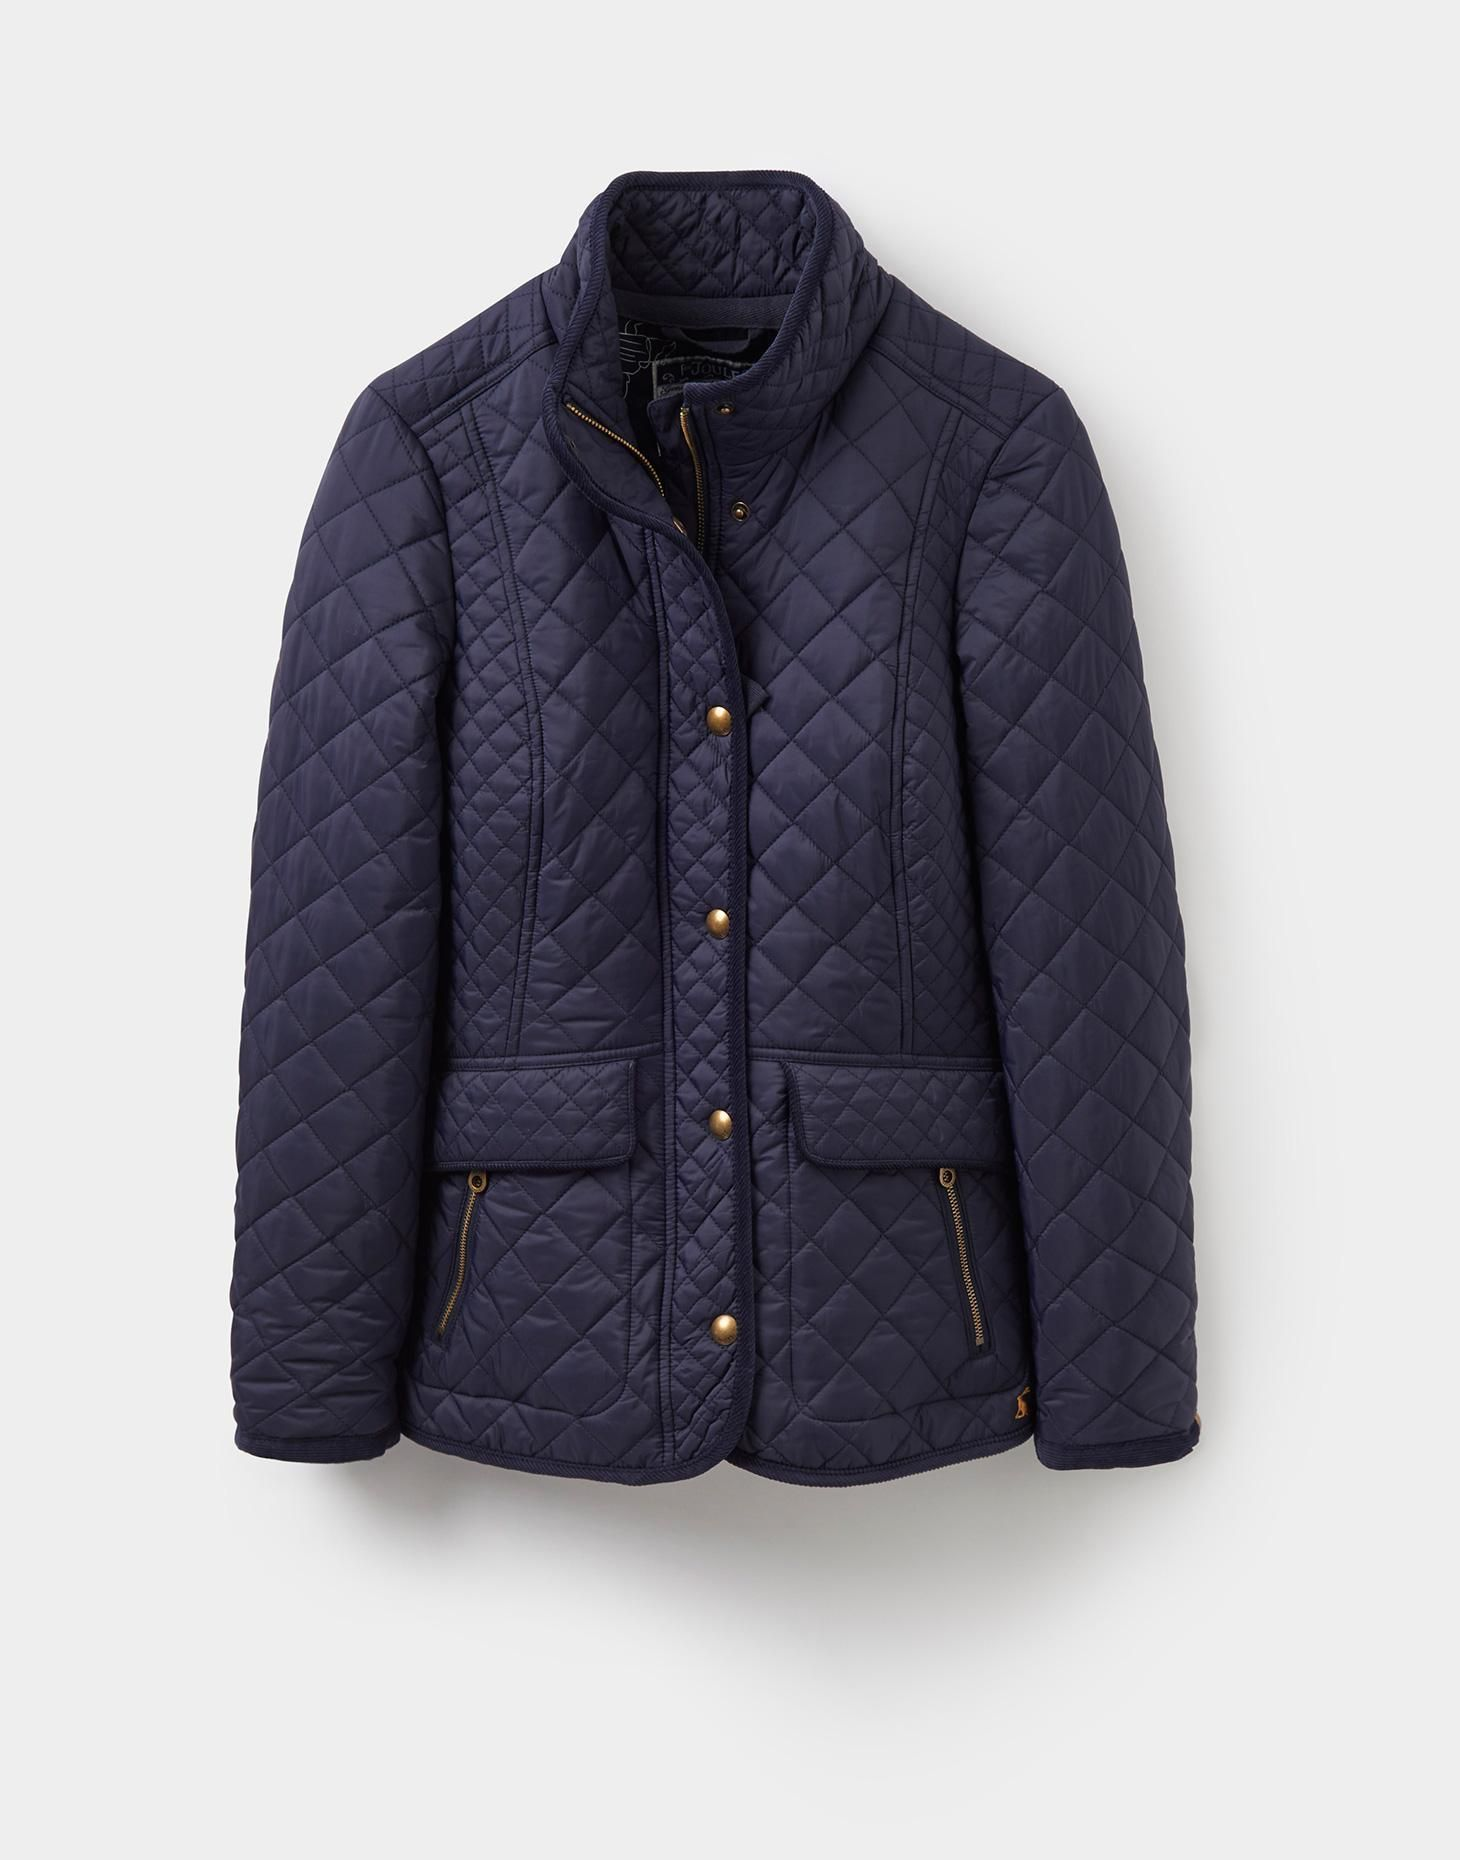 Newdale Marine Navy Quilted Jacket Joules Us My Style